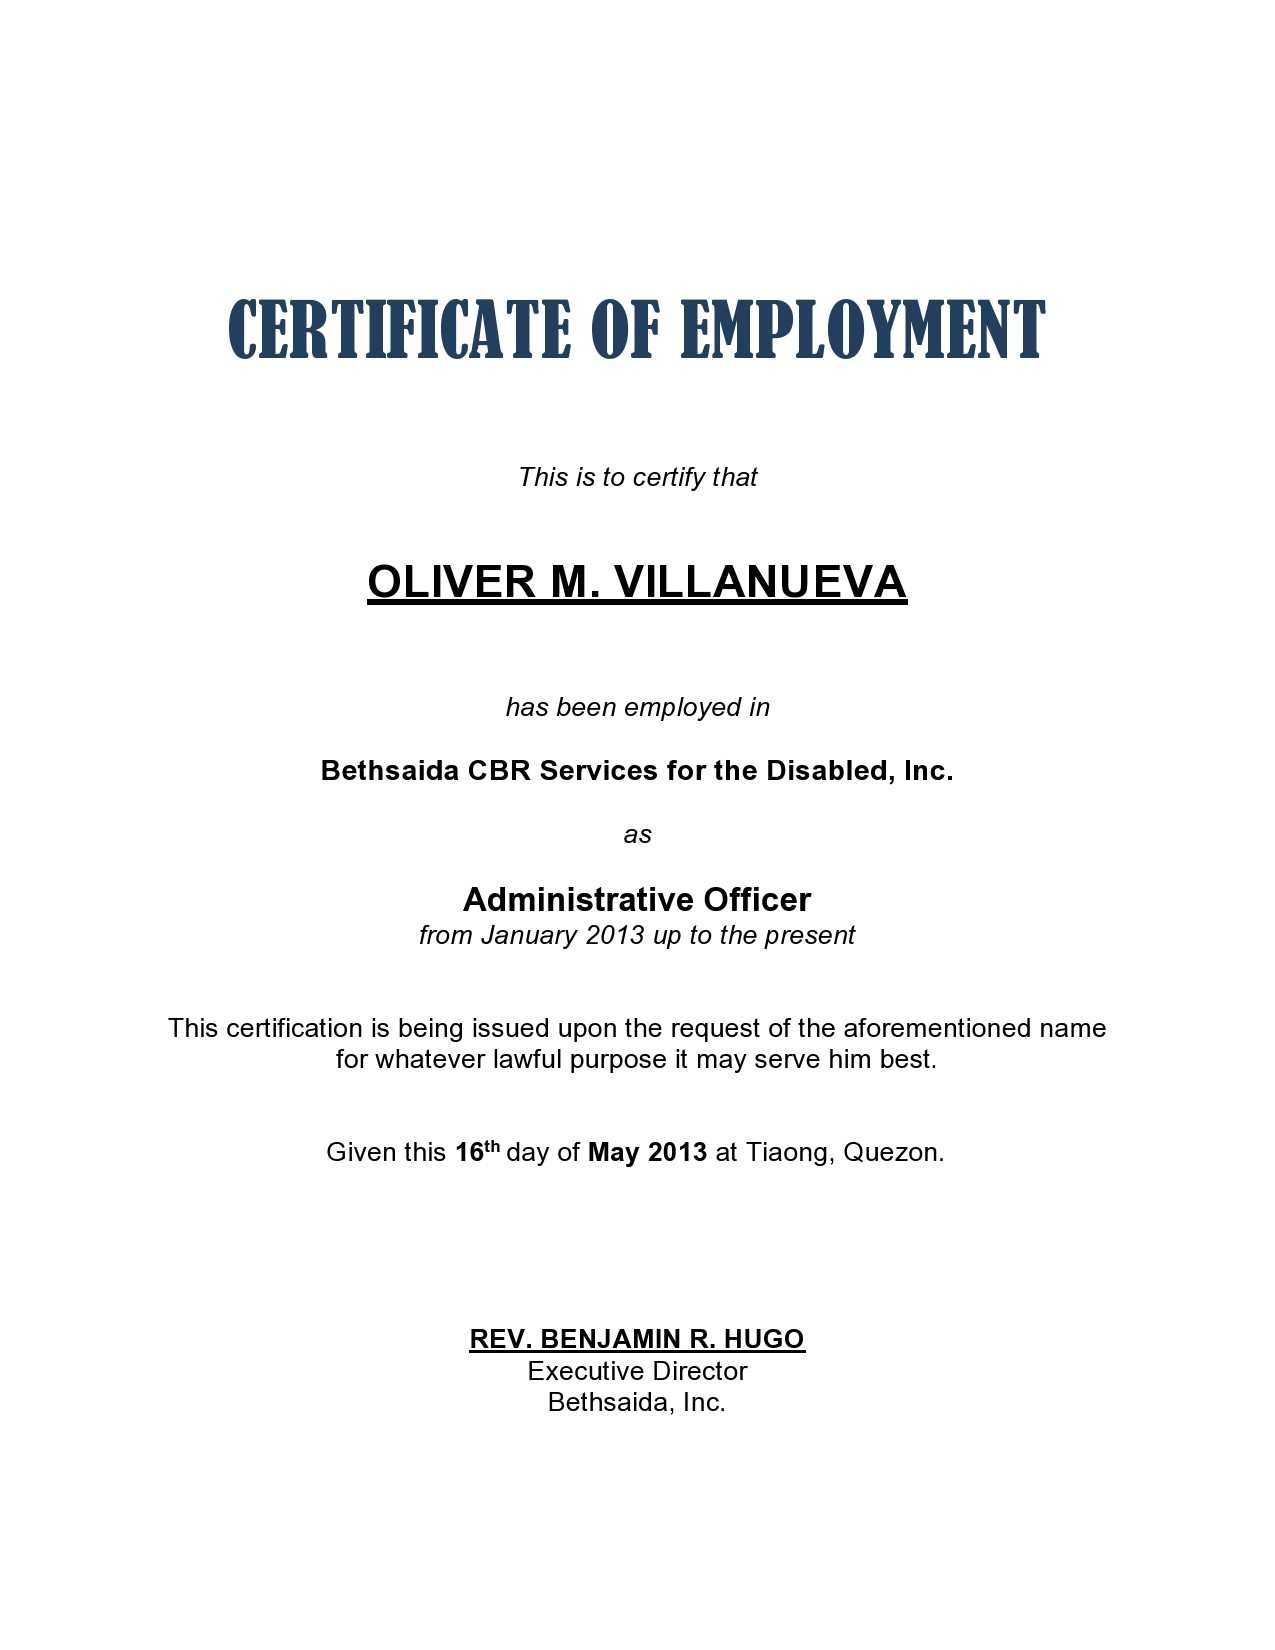 Free certificate of employment 09